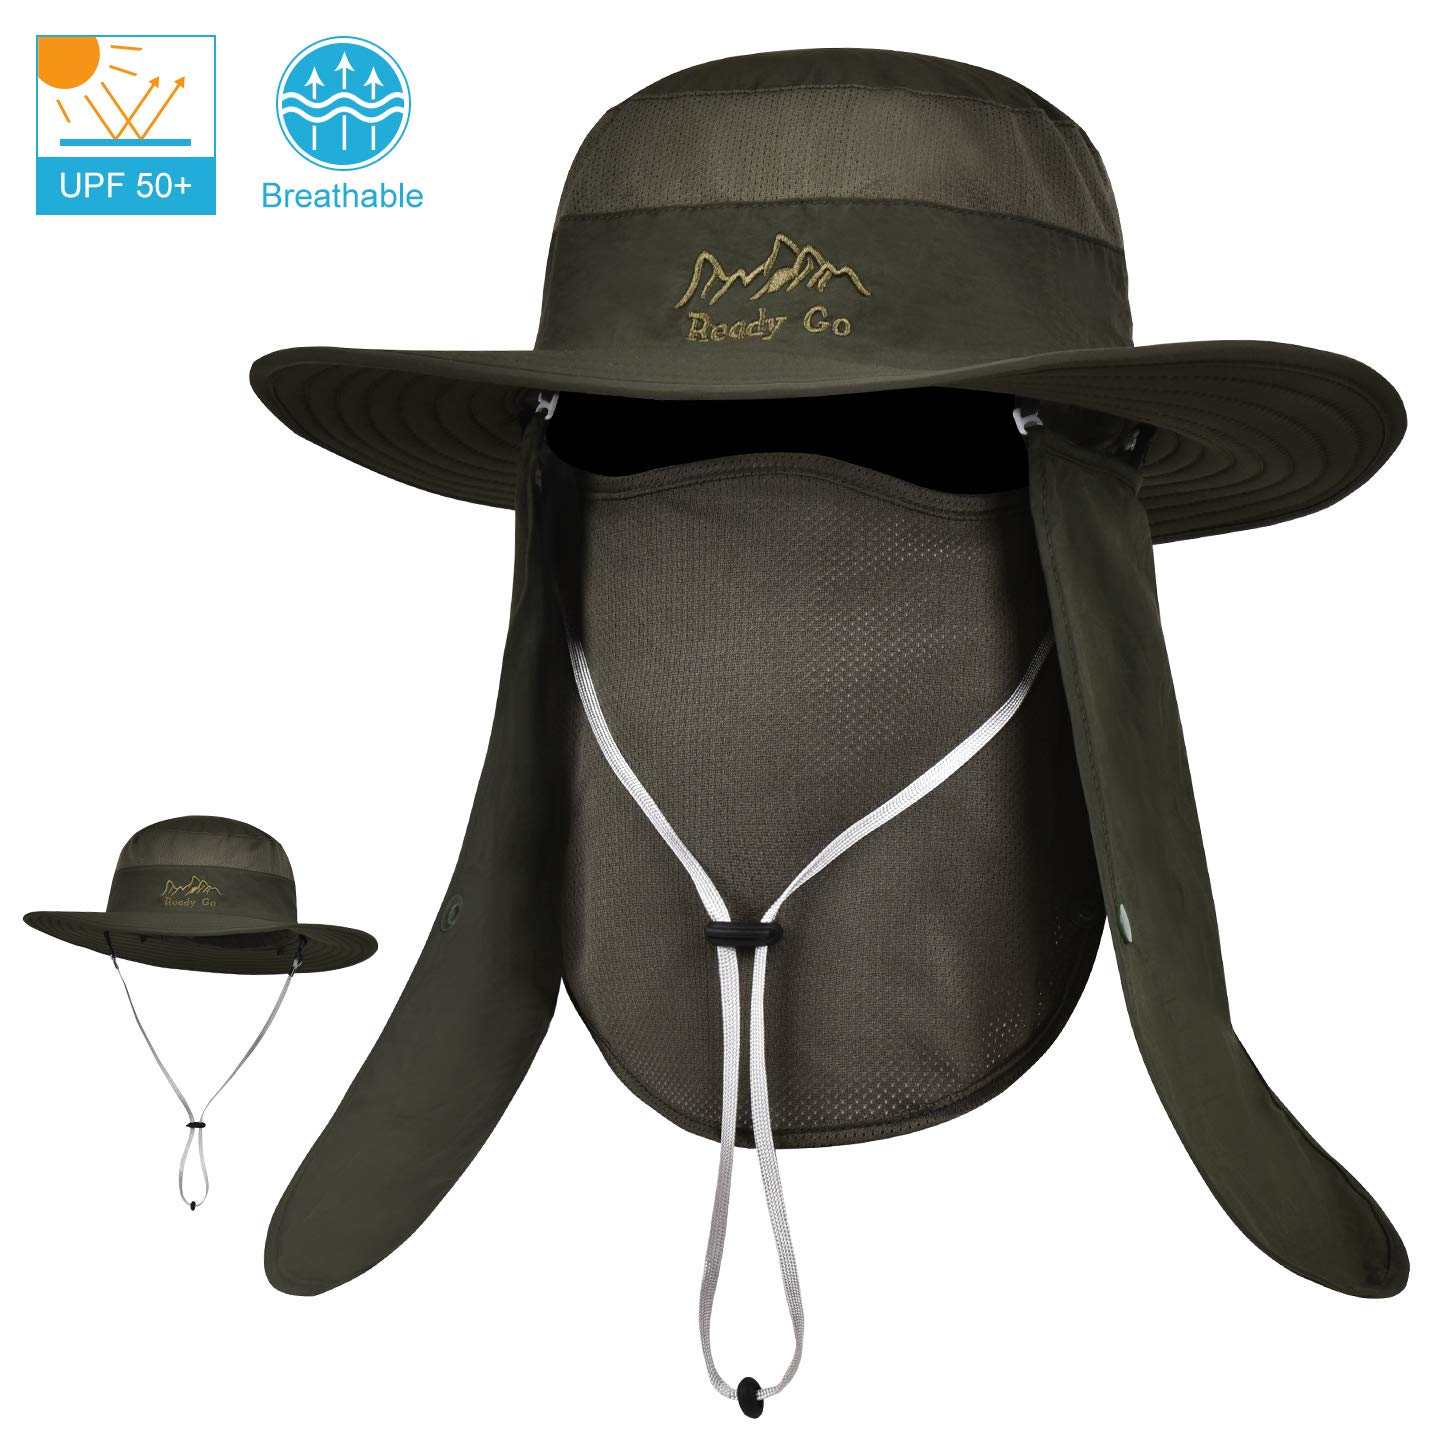 38ea19b4e LCZTN Outdoor Sun Cap for Men & Women Breathable Wide Brim Fishing Hat UPF  50+ UV Protection with Removable Face & Neck Flap for Backpacking Hiking ...